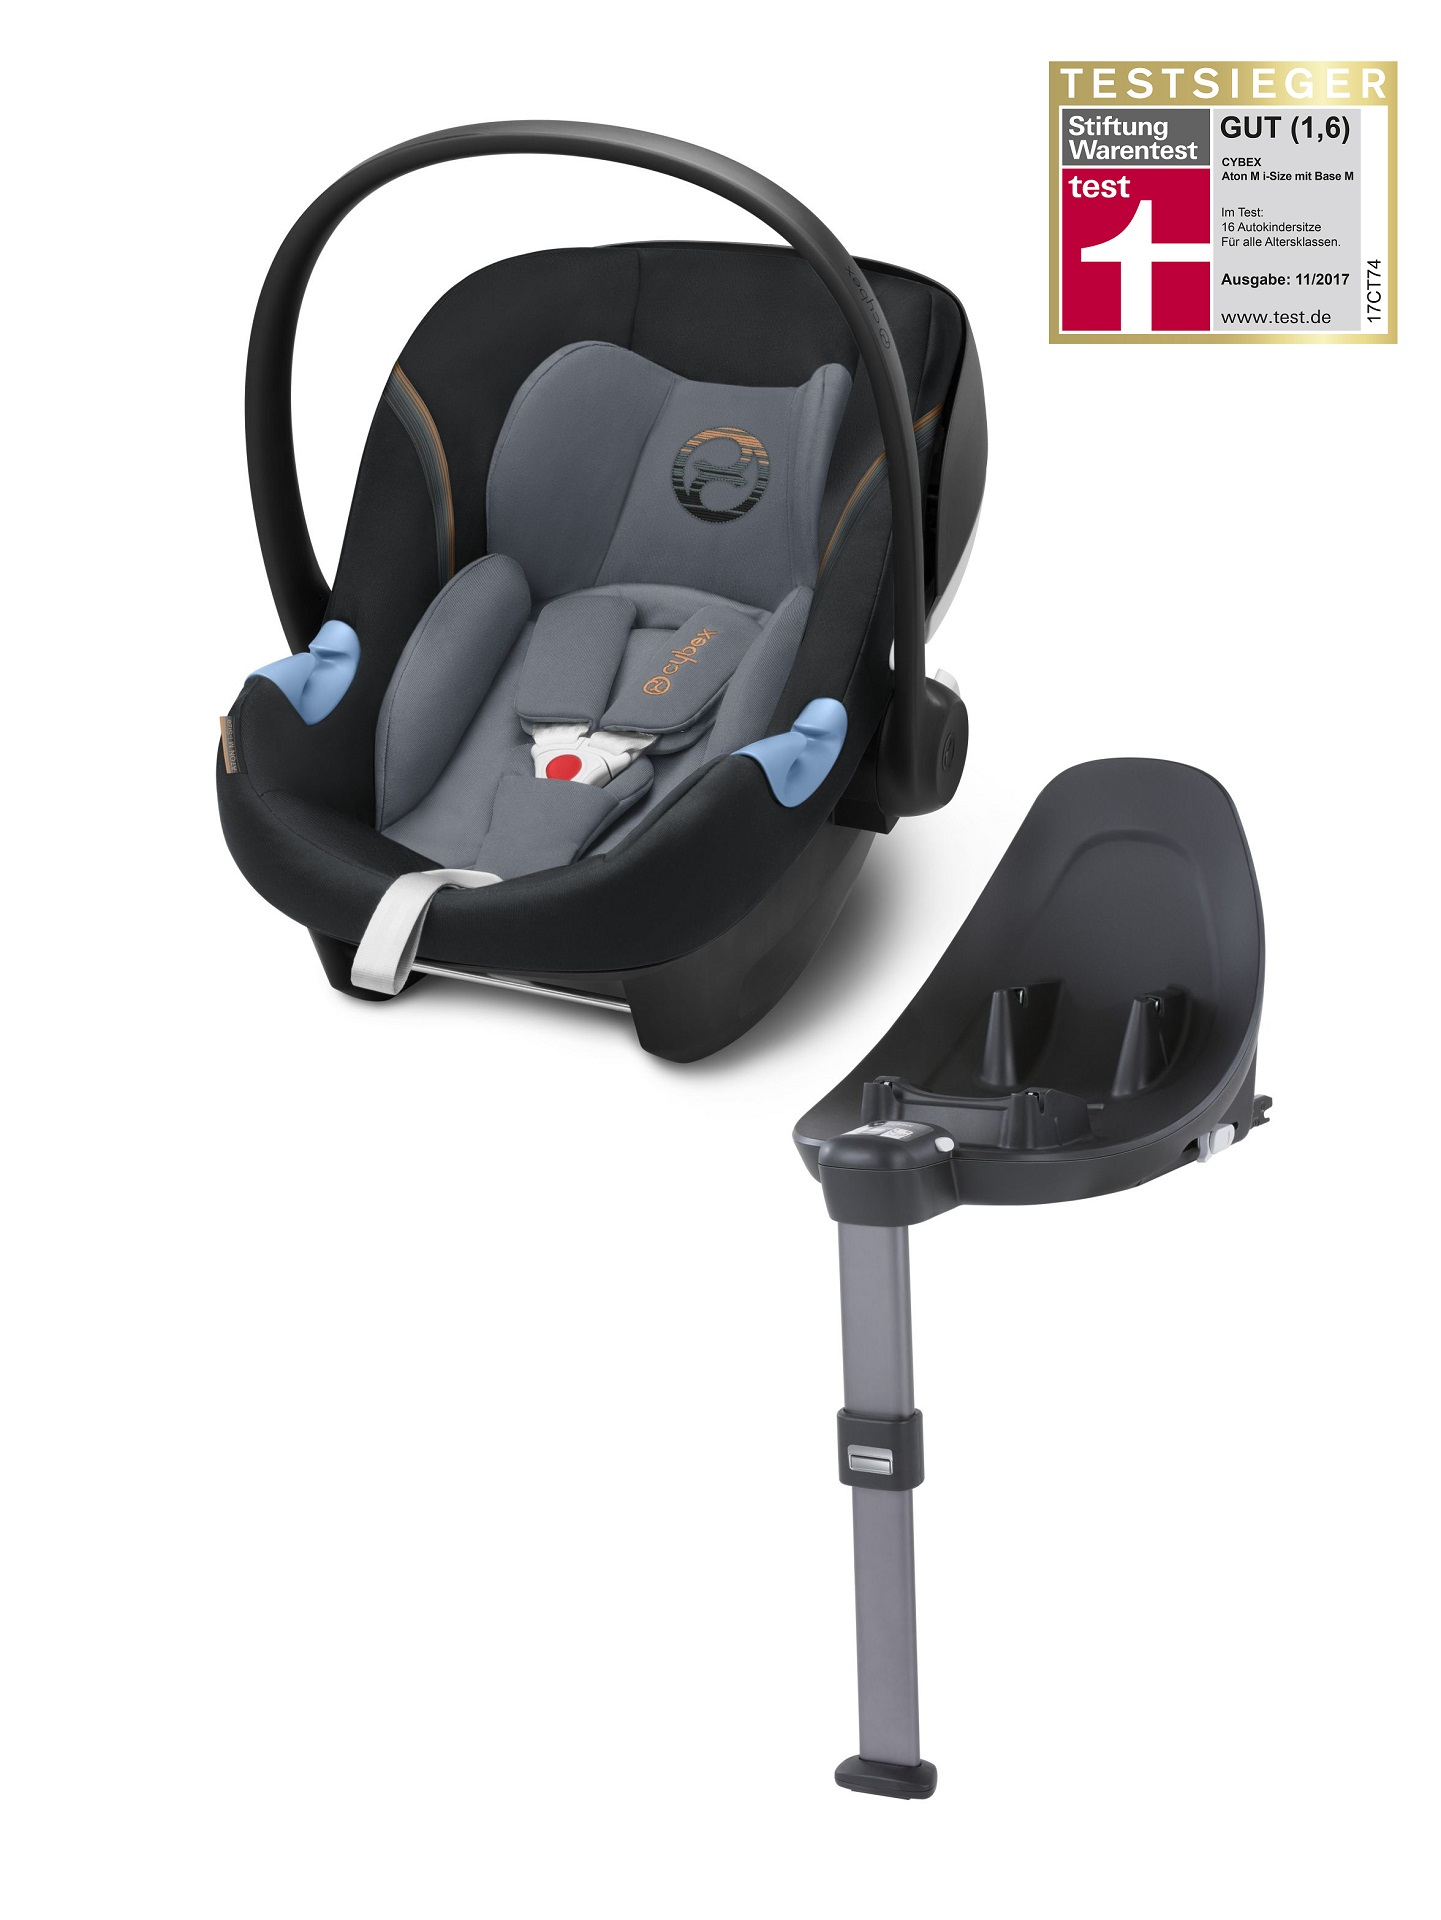 cybex infant car seat aton m i size including base m 2018 pepper black dark grey buy at. Black Bedroom Furniture Sets. Home Design Ideas